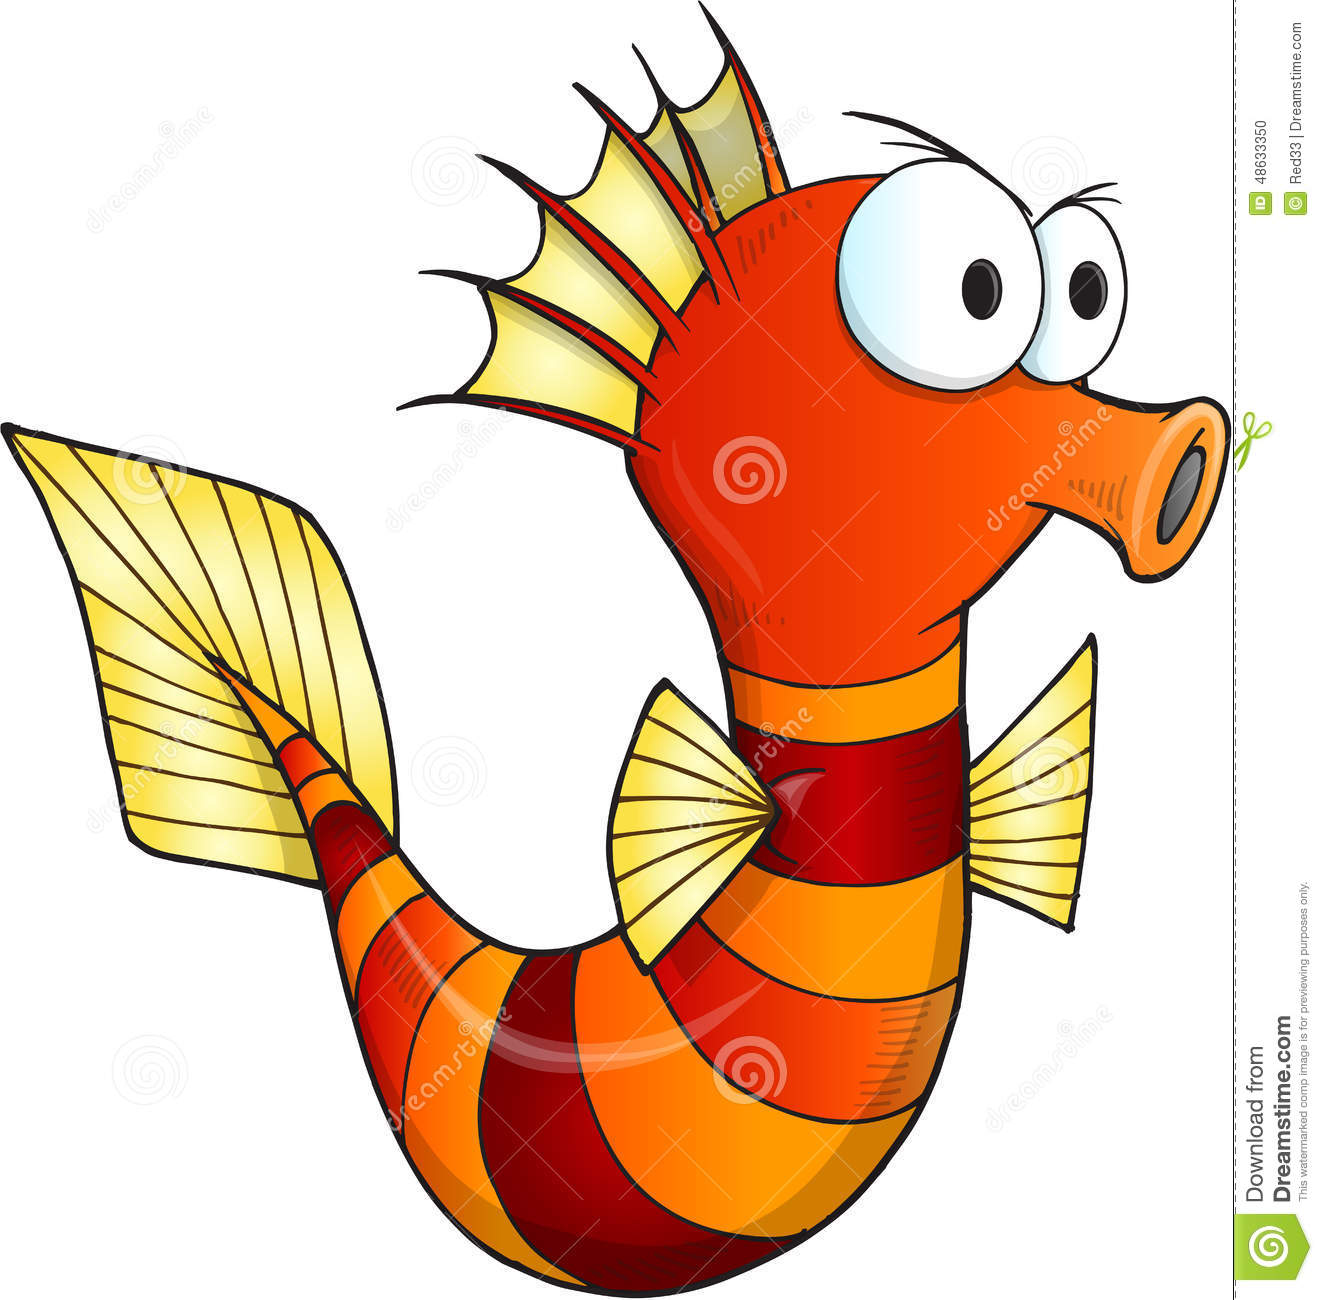 Angry Sea Horse Vector Stock Vector - Image: 48633350